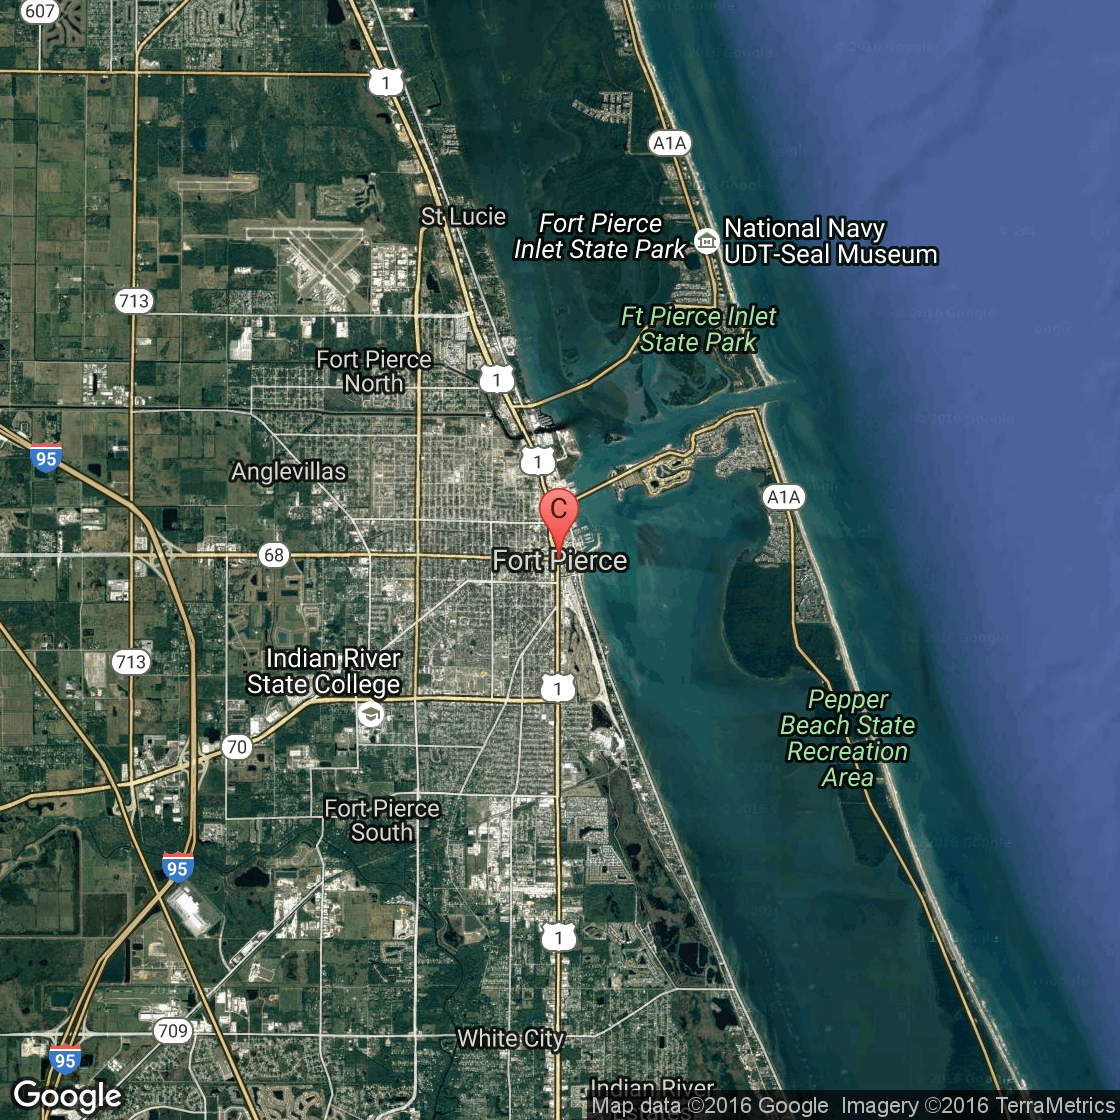 Hotels On The Oceanfront Of Fort Pierce Florida USA Today - Florida map ft pierce